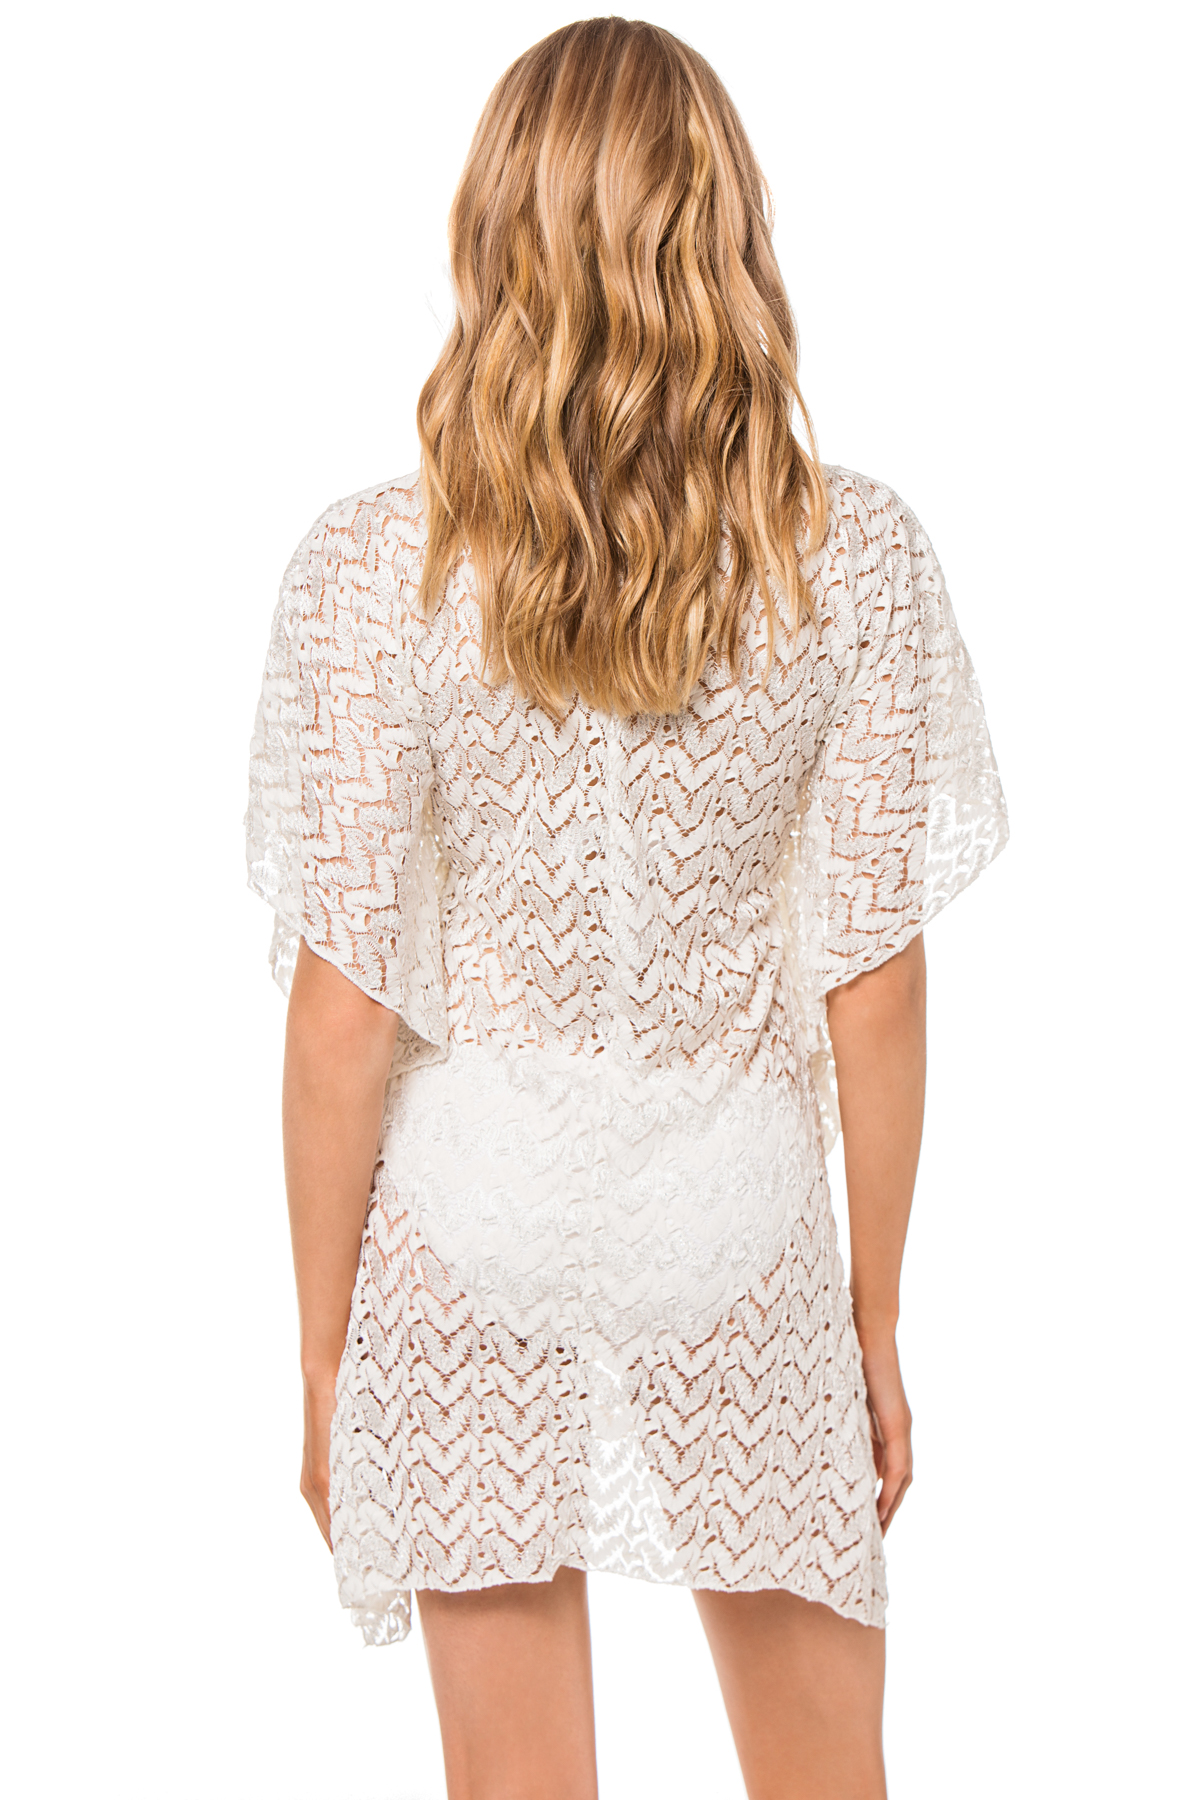 Metallic Lace Cover Tunic - Ivory 2